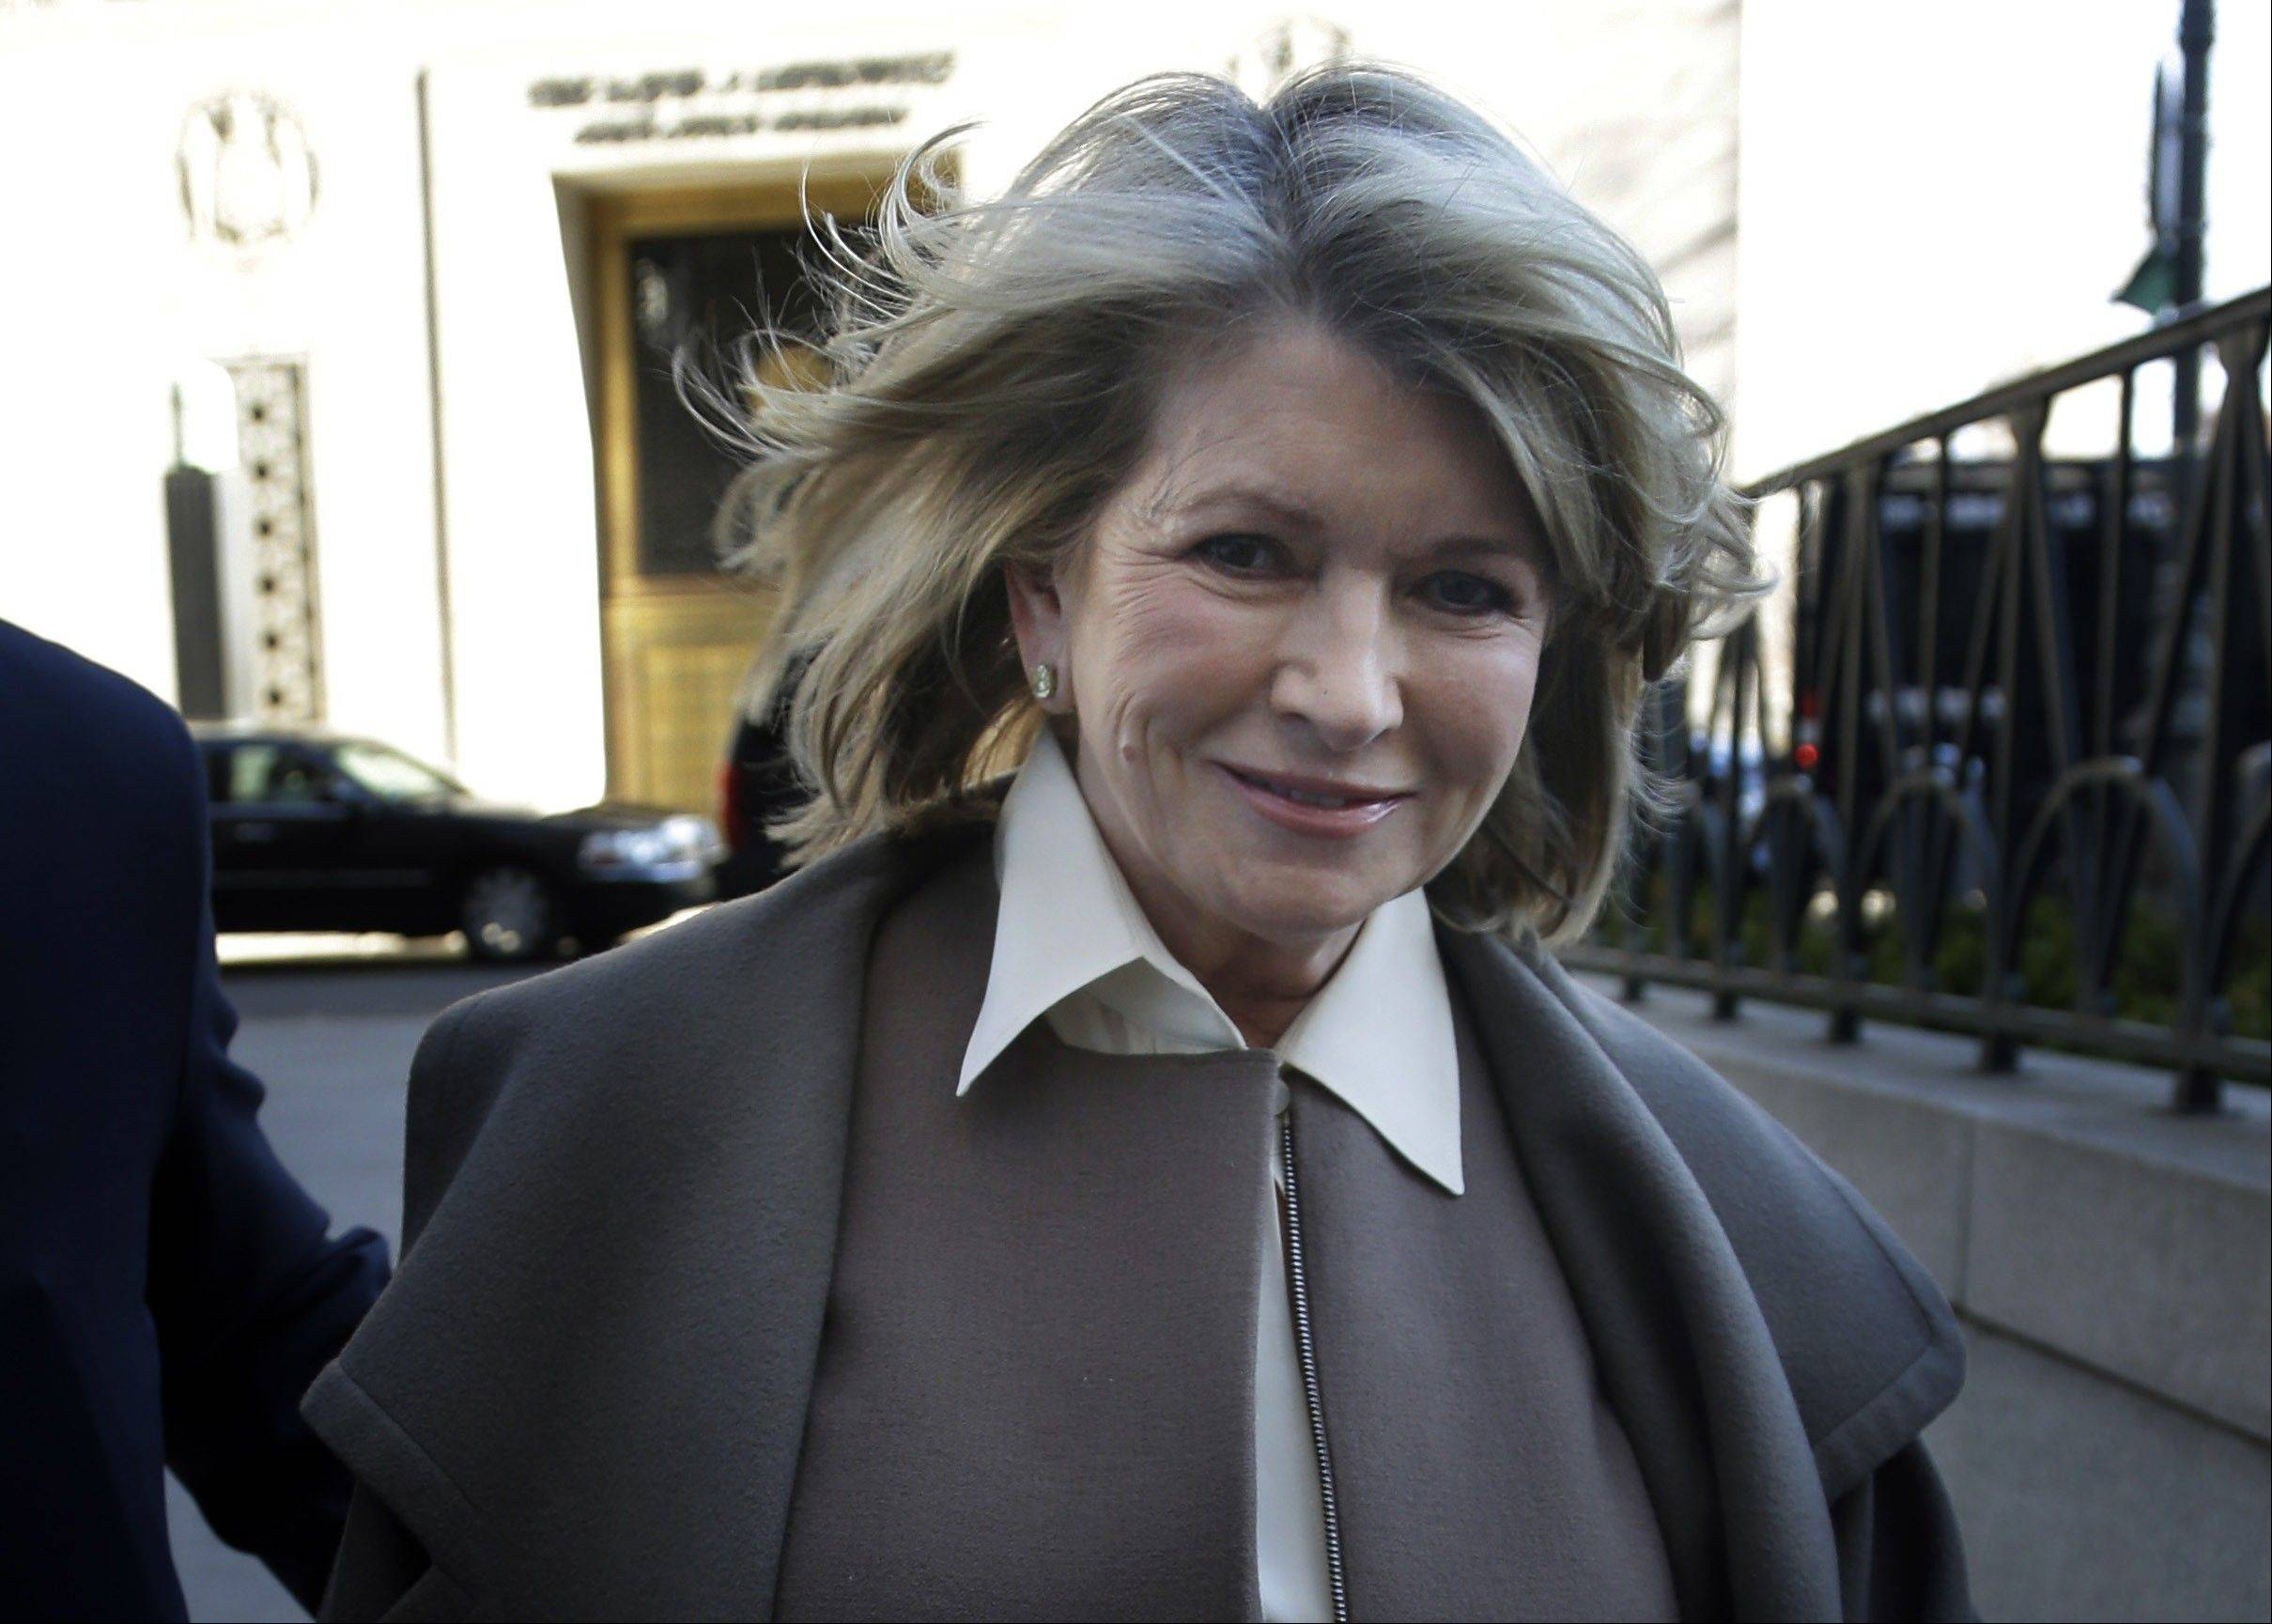 Martha Stewart arrives to court in New York, Tuesday, March 5, 2013. Macy's Inc. is suing the media and merchandising company Stewart founded for breaching an exclusive contract when she signed a deal with J.C. Penney in December 2011 to open shops at most of its stores this spring.